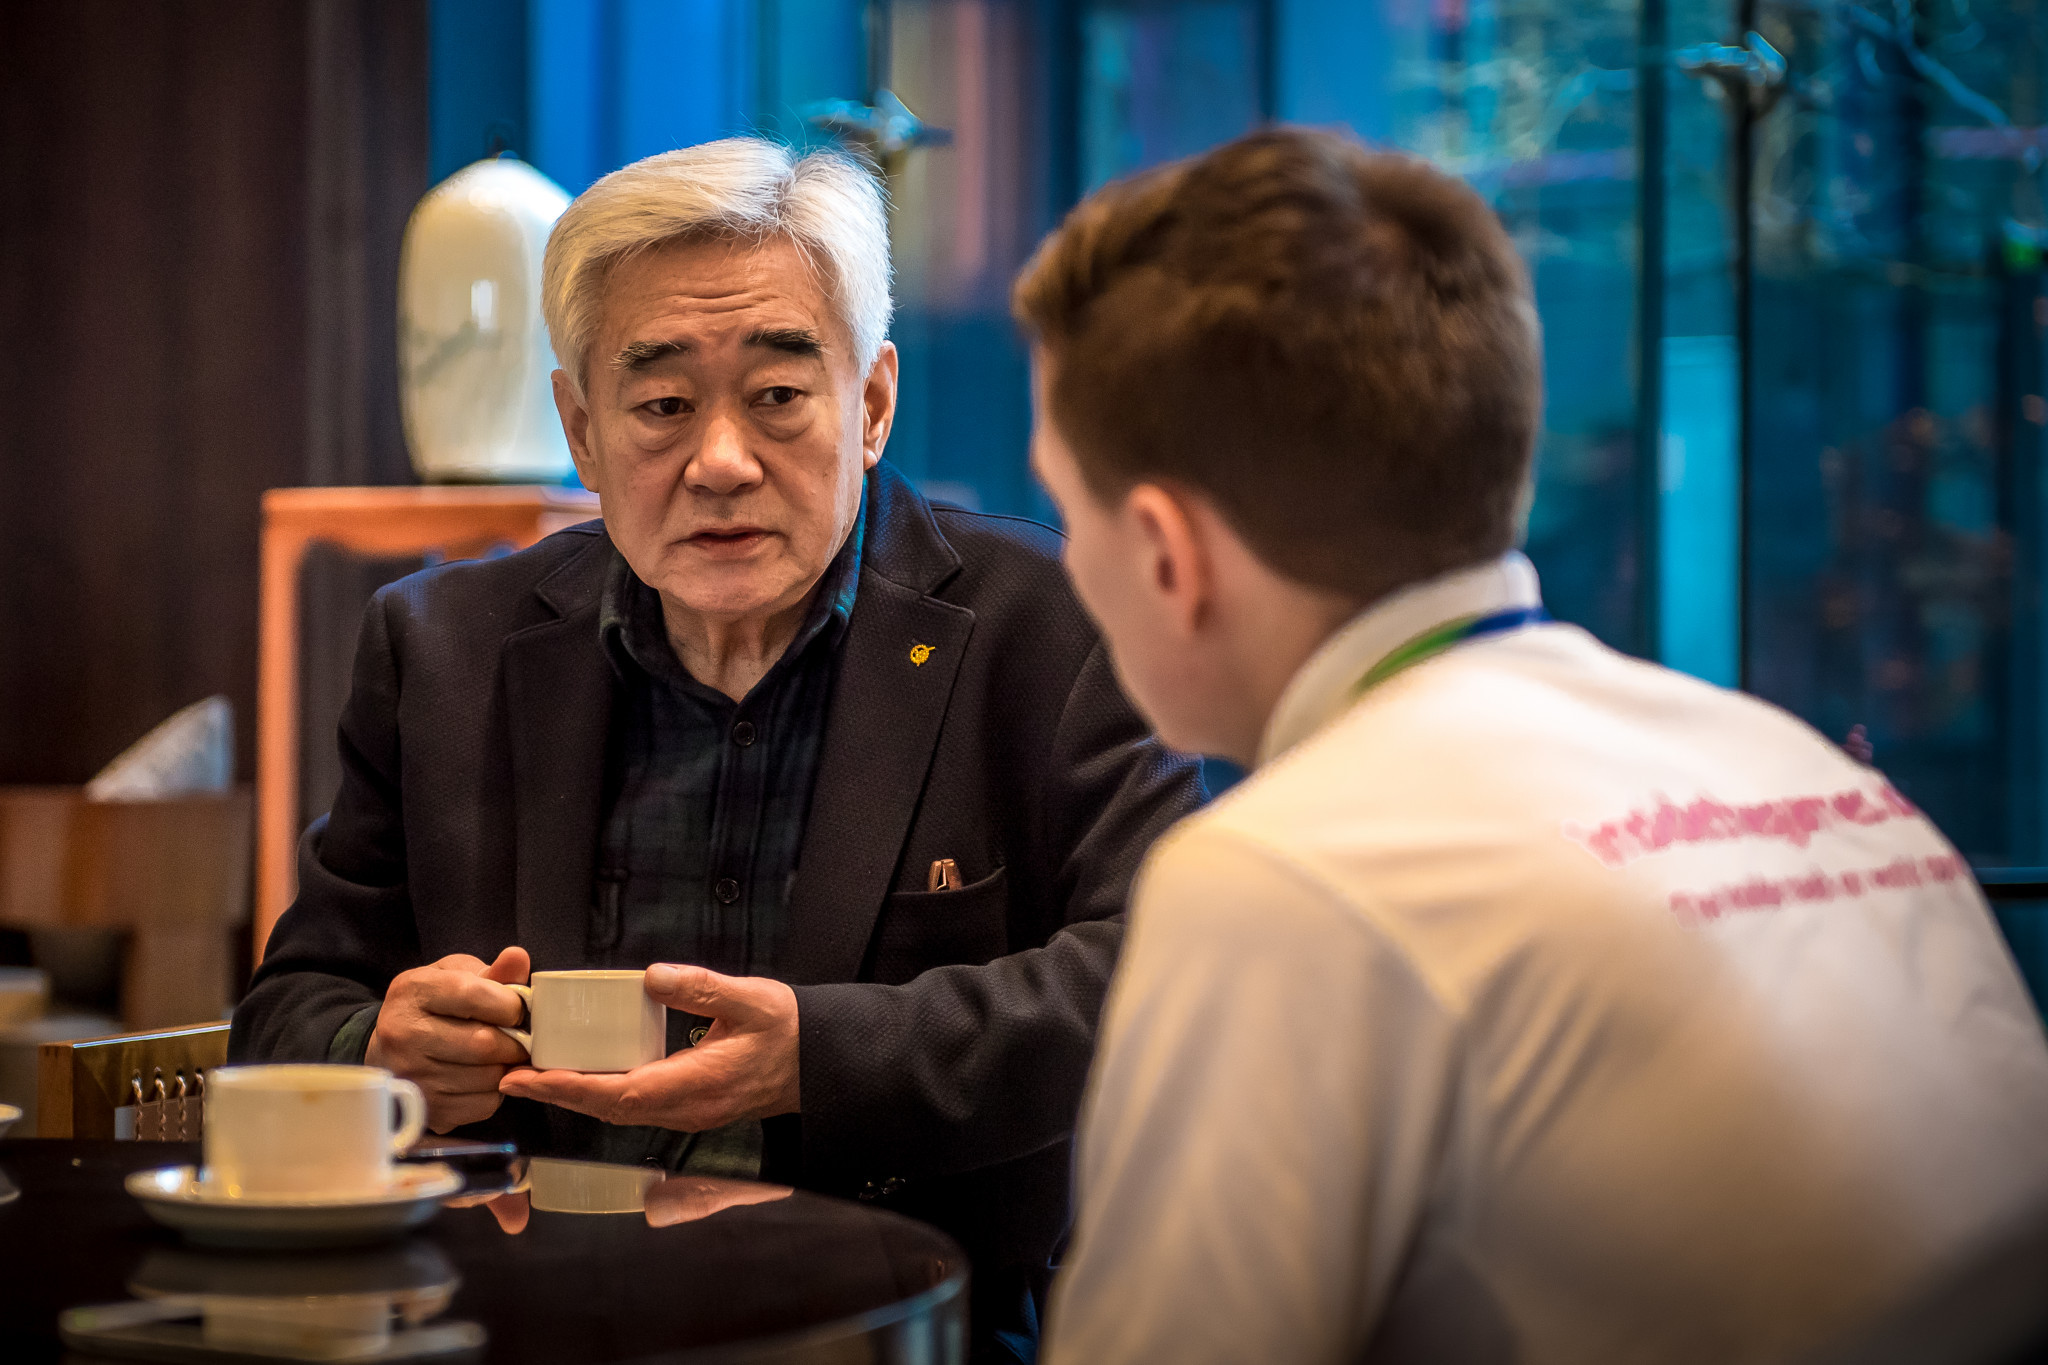 World Taekwondo President reveals interest from Russia and Mexico in hosting future professional events